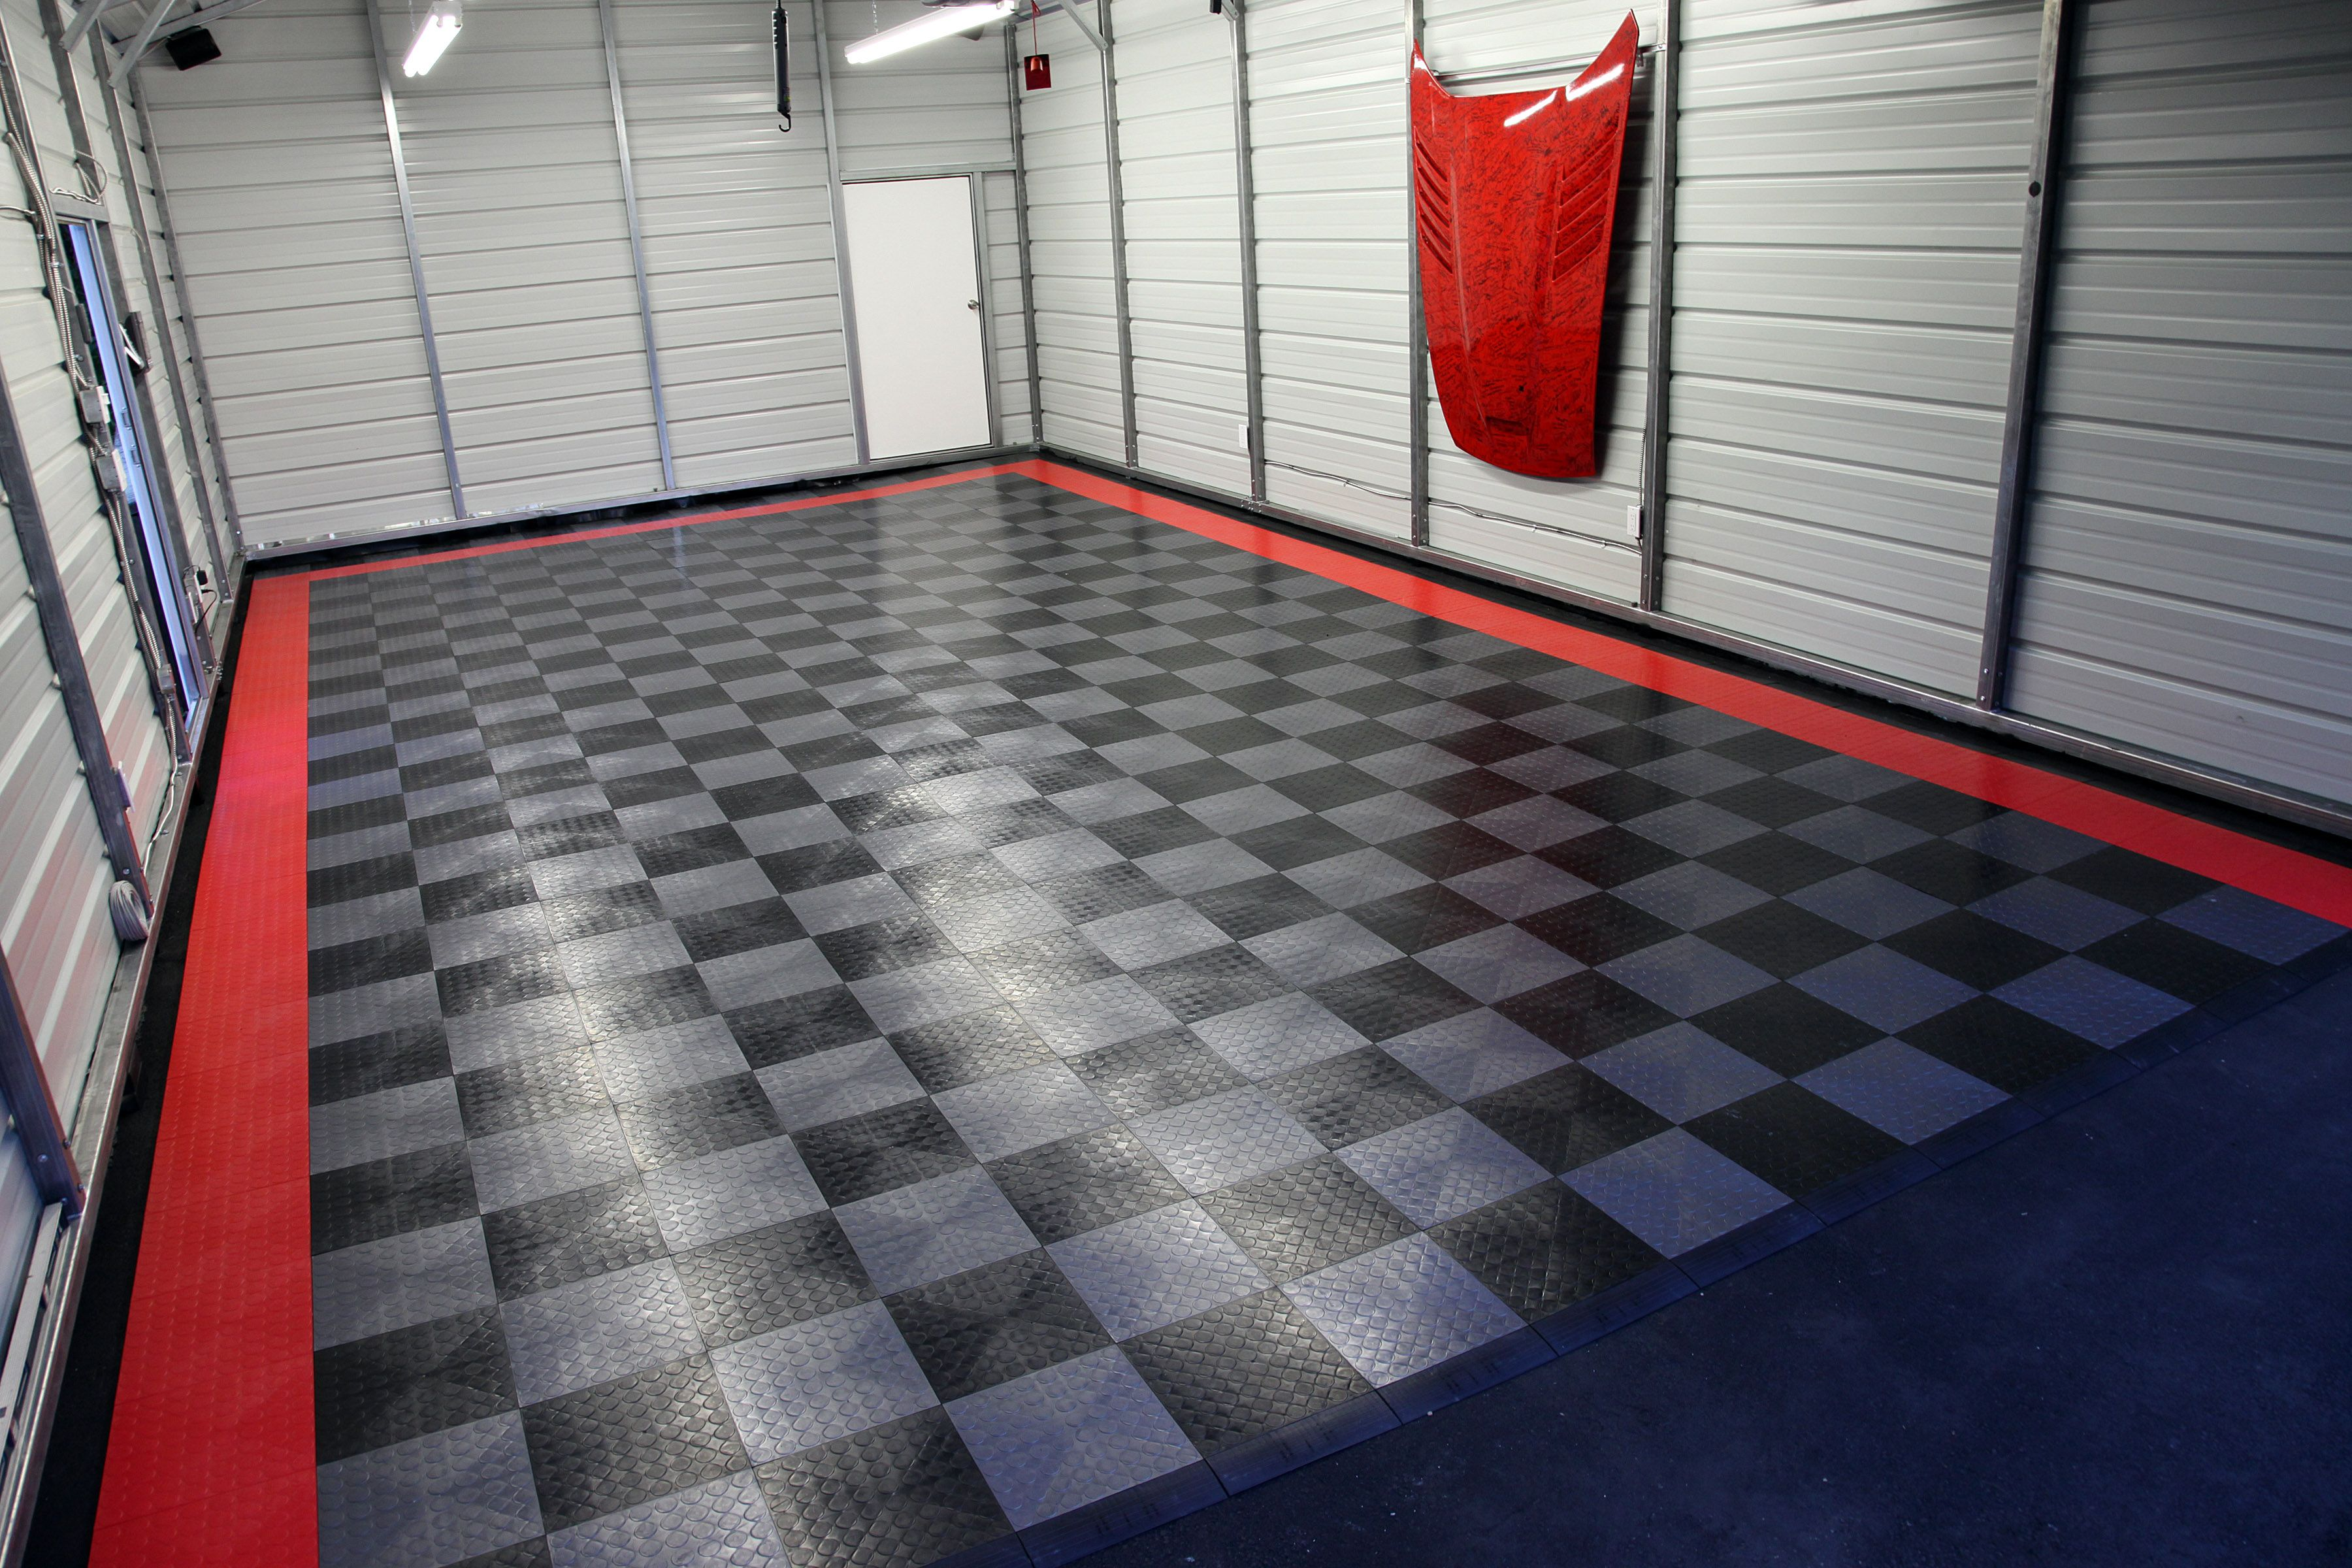 Garage flooring you can use rubber flooring or laminate flooring